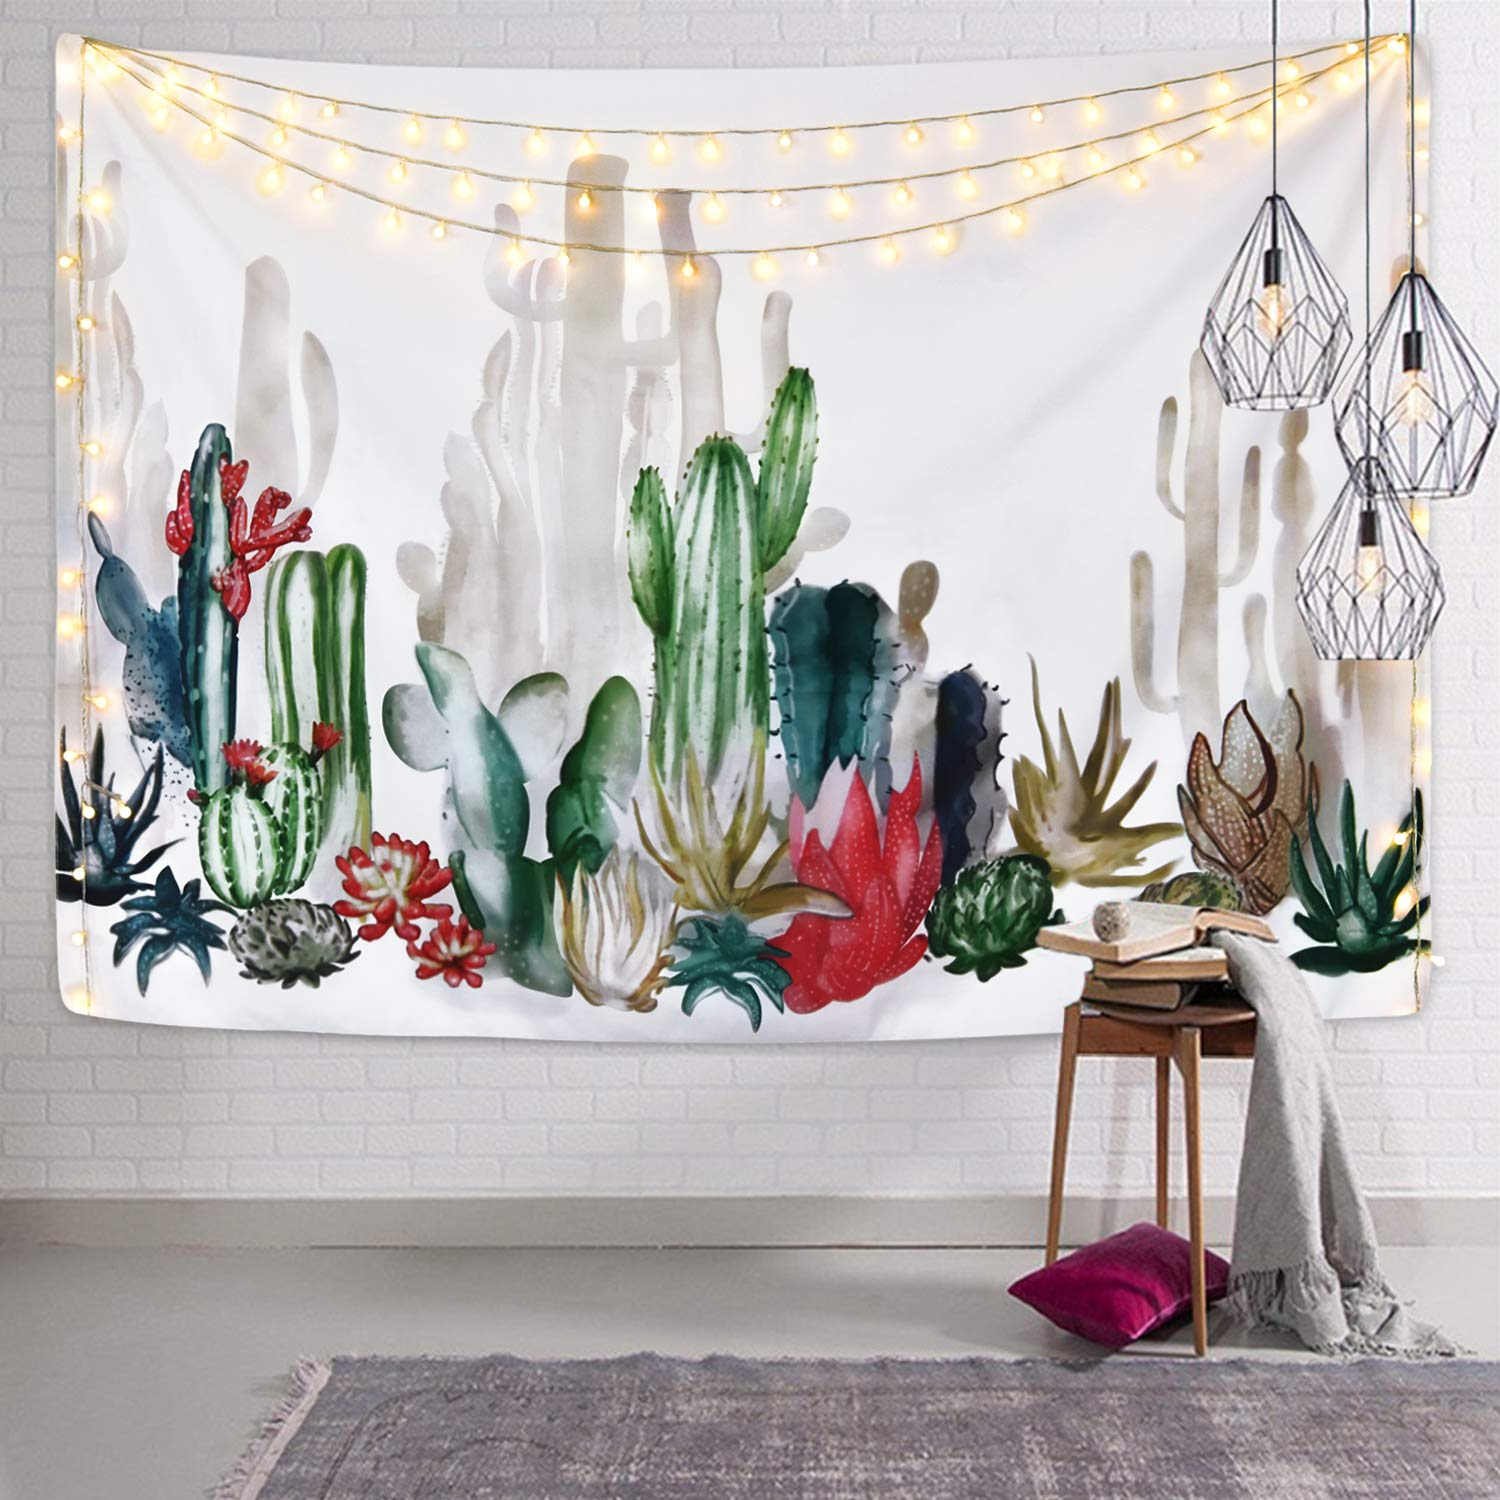 Smurfs Yingda Cactus Tapestry Cactus Plant Printed Tapestry Succulents Tapestry for Bedroom Living Room